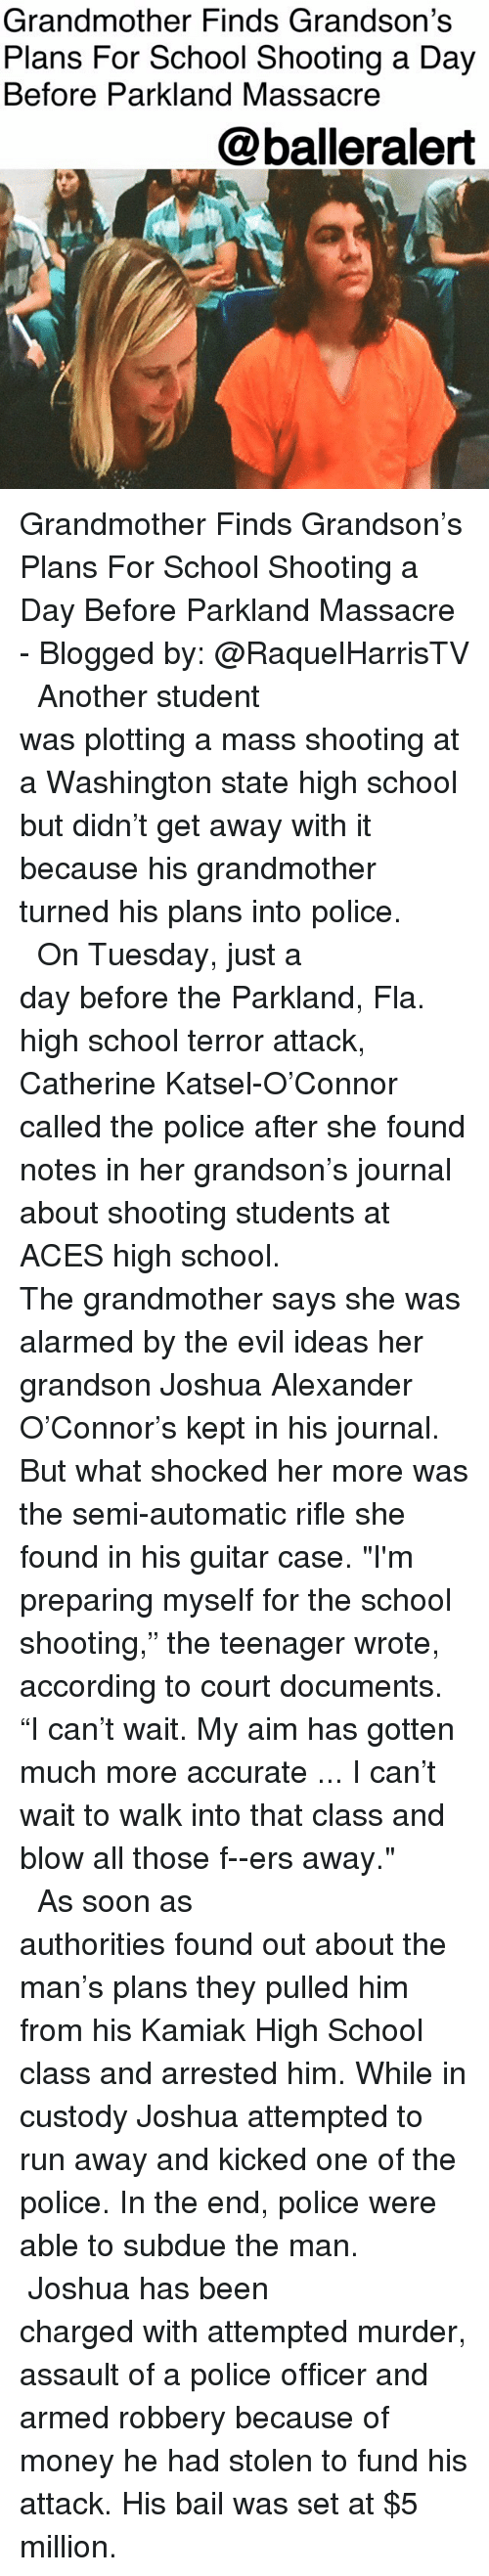 """Memes, Money, and Police: Grandmother Finds Grandson's  Plans For School Shooting a Day  Before Parkland Massacre  @balleralert Grandmother Finds Grandson's Plans For School Shooting a Day Before Parkland Massacre - Blogged by: @RaquelHarrisTV ⠀⠀⠀⠀⠀⠀⠀⠀⠀ ⠀⠀⠀⠀⠀⠀⠀⠀⠀ Another student was plotting a mass shooting at a Washington state high school but didn't get away with it because his grandmother turned his plans into police. ⠀⠀⠀⠀⠀⠀⠀⠀⠀ ⠀⠀⠀⠀⠀⠀⠀⠀⠀ On Tuesday, just a day before the Parkland, Fla. high school terror attack, Catherine Katsel-O'Connor called the police after she found notes in her grandson's journal about shooting students at ACES high school. ⠀⠀⠀⠀⠀⠀⠀⠀⠀ ⠀⠀⠀⠀⠀⠀⠀⠀⠀ The grandmother says she was alarmed by the evil ideas her grandson Joshua Alexander O'Connor's kept in his journal. But what shocked her more was the semi-automatic rifle she found in his guitar case. """"I'm preparing myself for the school shooting,"""" the teenager wrote, according to court documents. """"I can't wait. My aim has gotten much more accurate ... I can't wait to walk into that class and blow all those f--ers away."""" ⠀⠀⠀⠀⠀⠀⠀⠀⠀ ⠀⠀⠀⠀⠀⠀⠀⠀⠀ As soon as authorities found out about the man's plans they pulled him from his Kamiak High School class and arrested him. While in custody Joshua attempted to run away and kicked one of the police. In the end, police were able to subdue the man. ⠀⠀⠀⠀⠀⠀⠀⠀⠀ ⠀⠀⠀⠀⠀⠀⠀⠀⠀ Joshua has been charged with attempted murder, assault of a police officer and armed robbery because of money he had stolen to fund his attack. His bail was set at $5 million."""